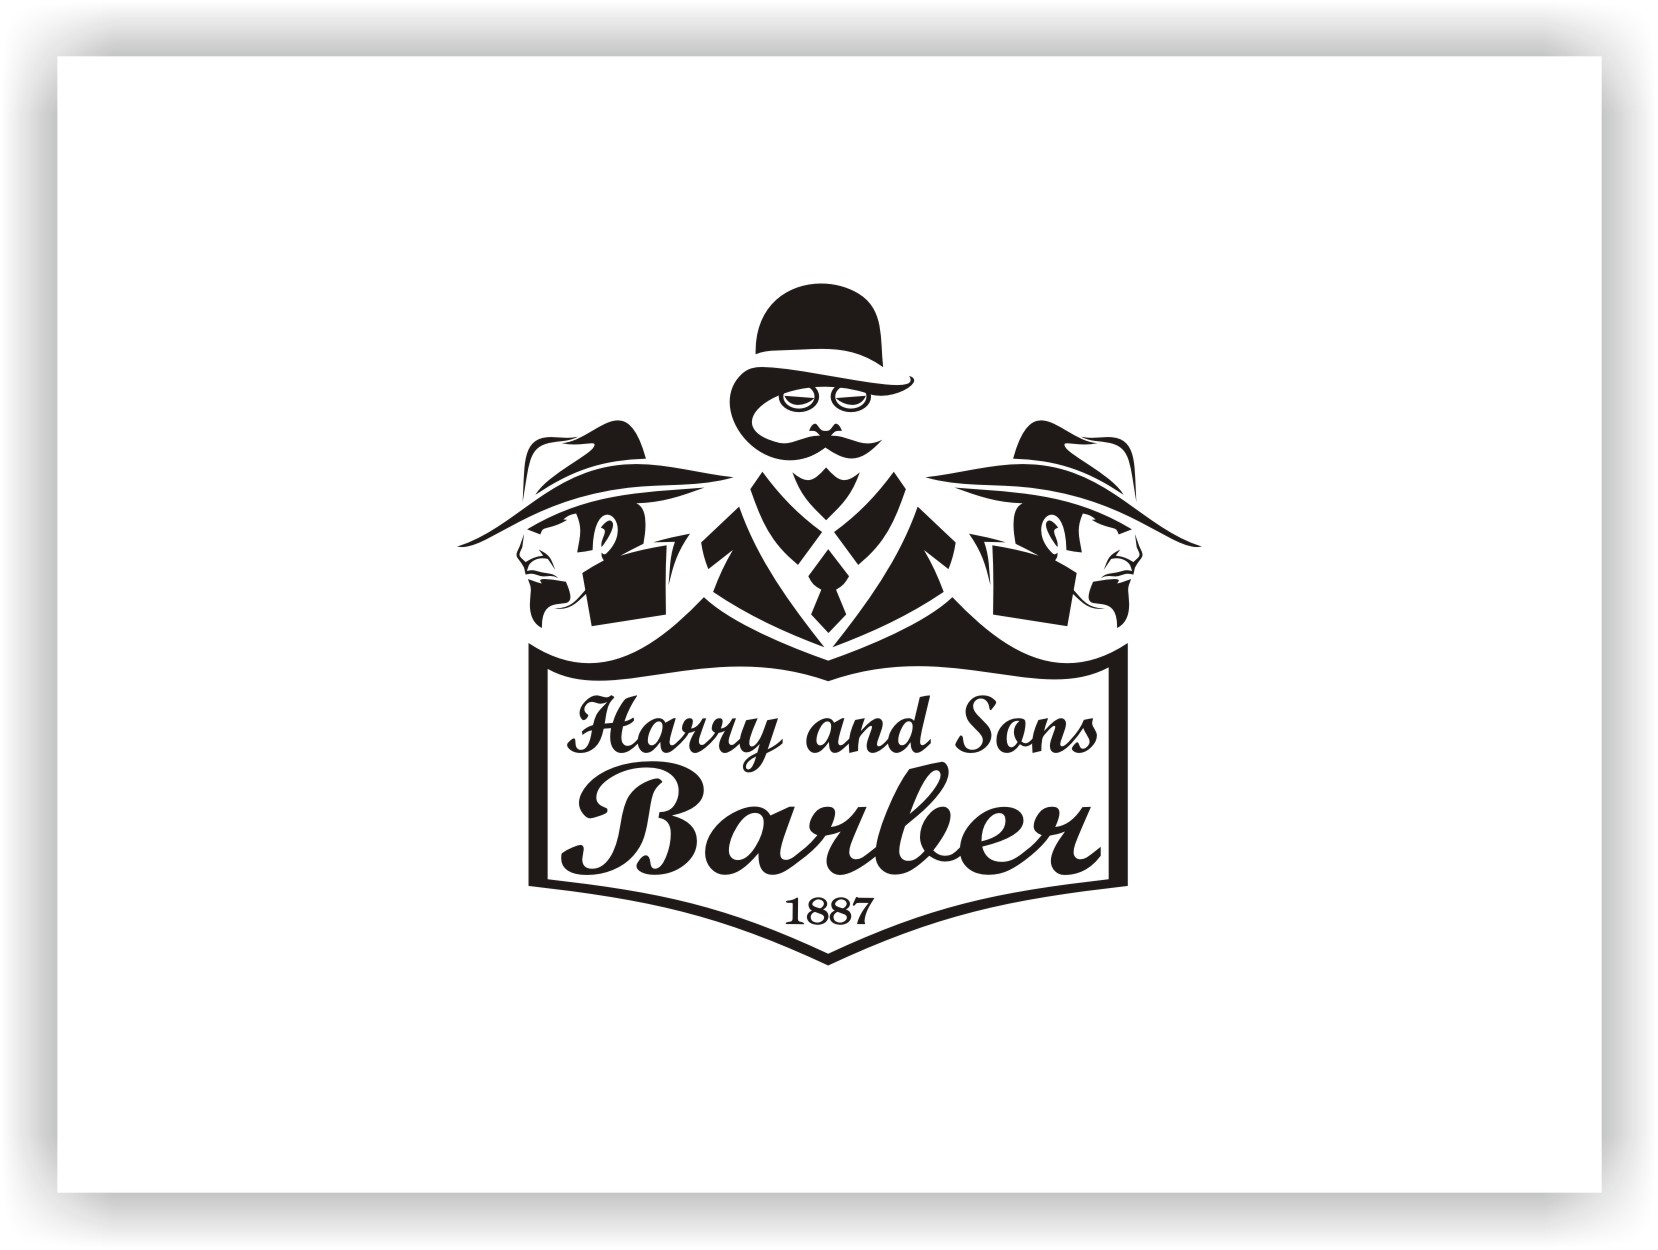 Logo Design by Joaquin Sampaio - Entry No. 30 in the Logo Design Contest Captivating Logo Design for Harry and Sons Barber.